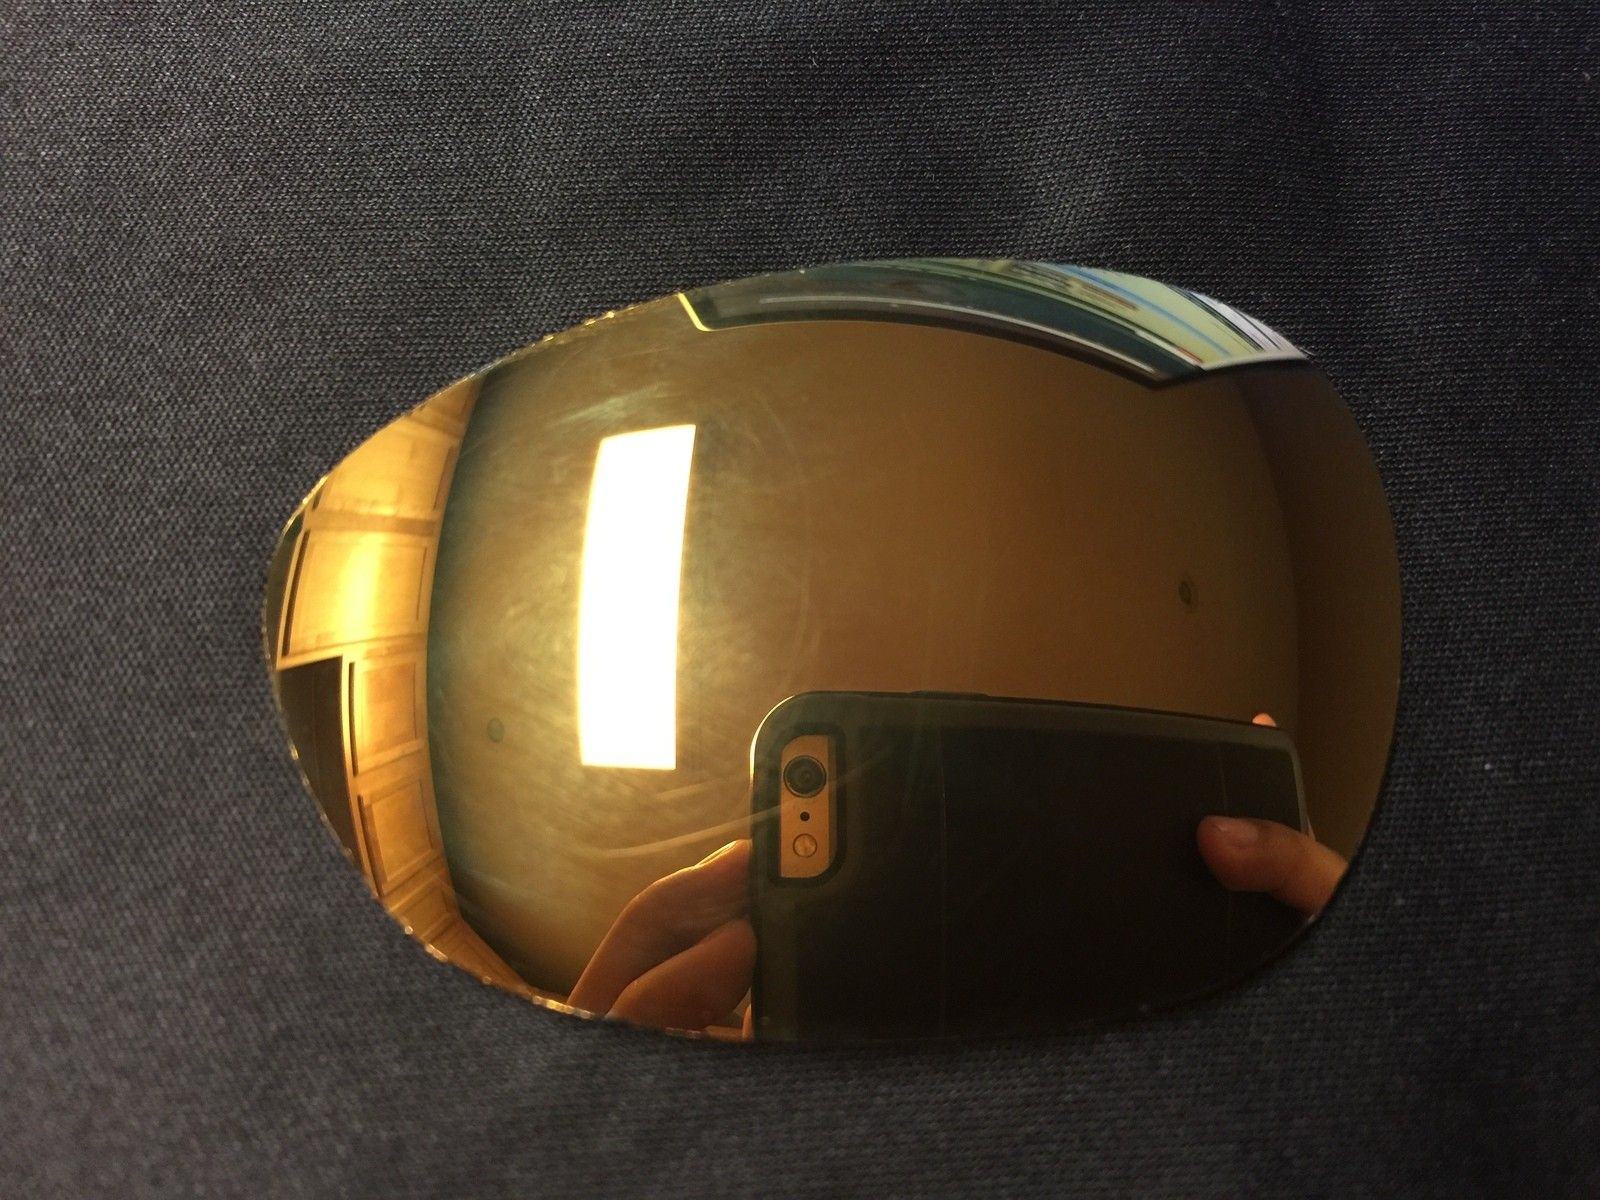 Used XX BI lens ***price dropped*** - image1.JPG